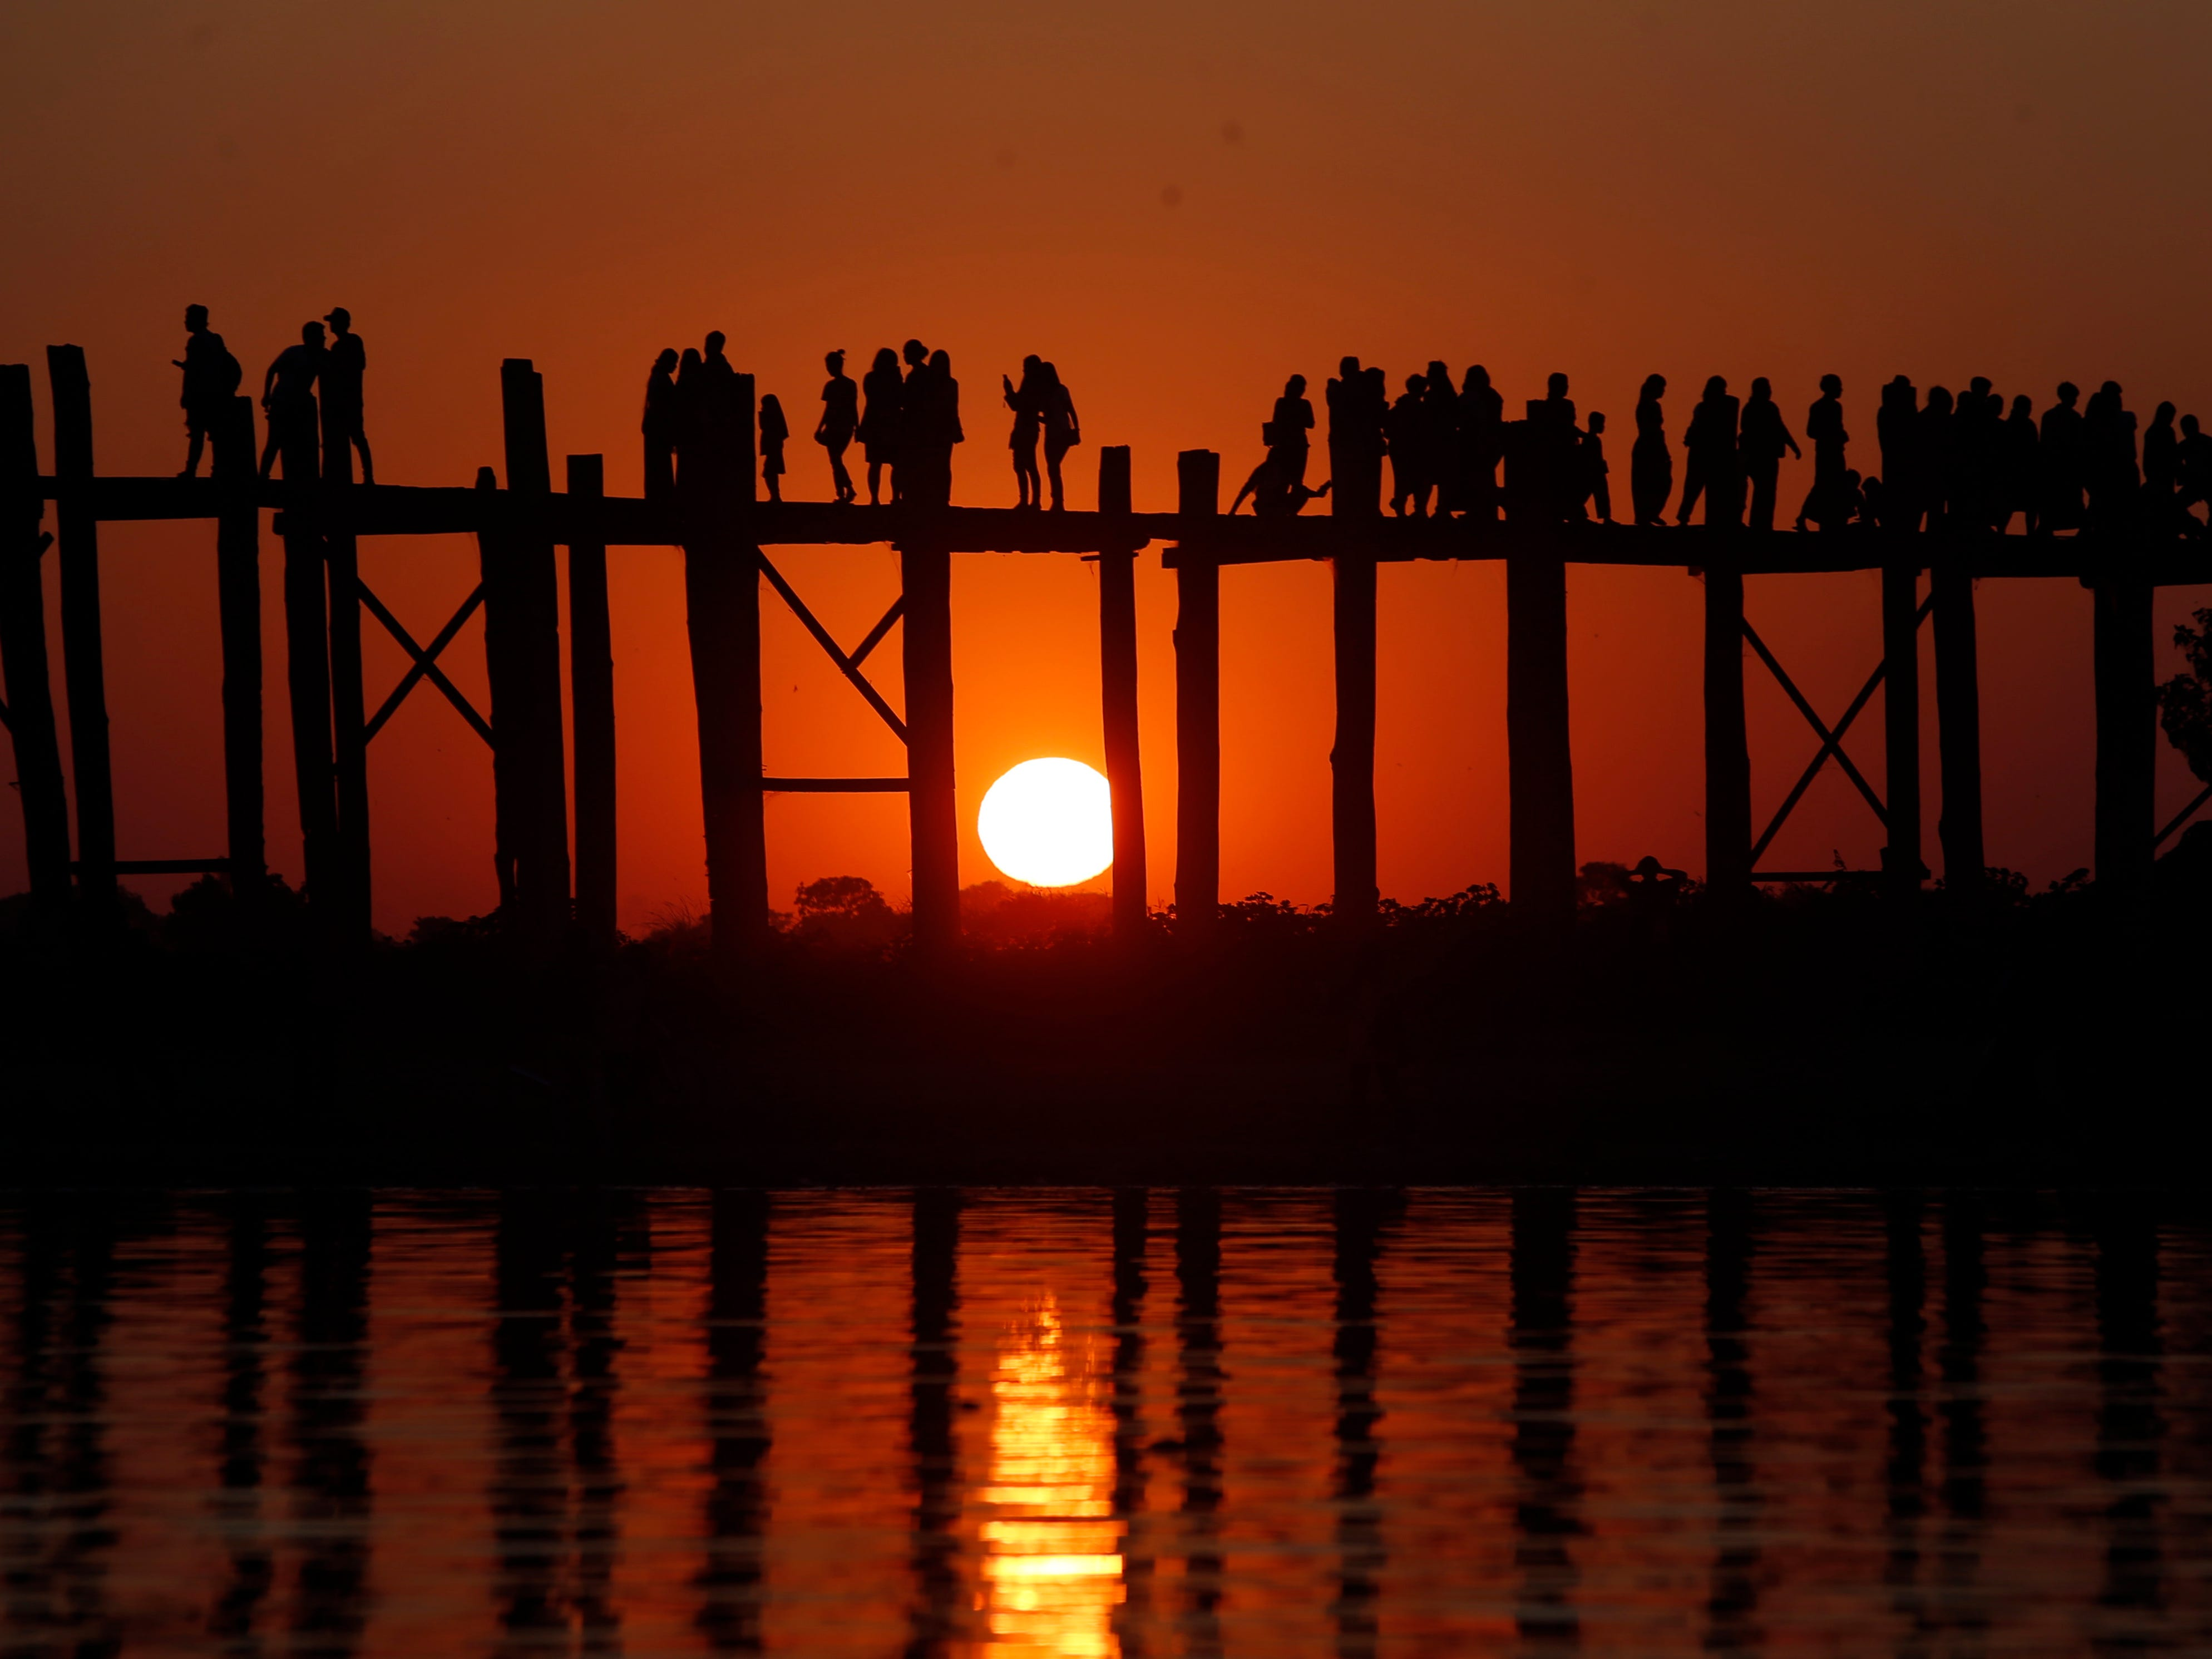 The last sunset of the year is seen over the U Paing (U Bein) Bridge at Taungthaman lake in Mandalay, Myanmar on Dec. 31, 2018. The footbridge stretches 1.2 km over Taungthaman Lake connecting its two banks near Amarapura. Built by village mayor U Paing around 1850, it is considered the longest teakwood bridge in the world.